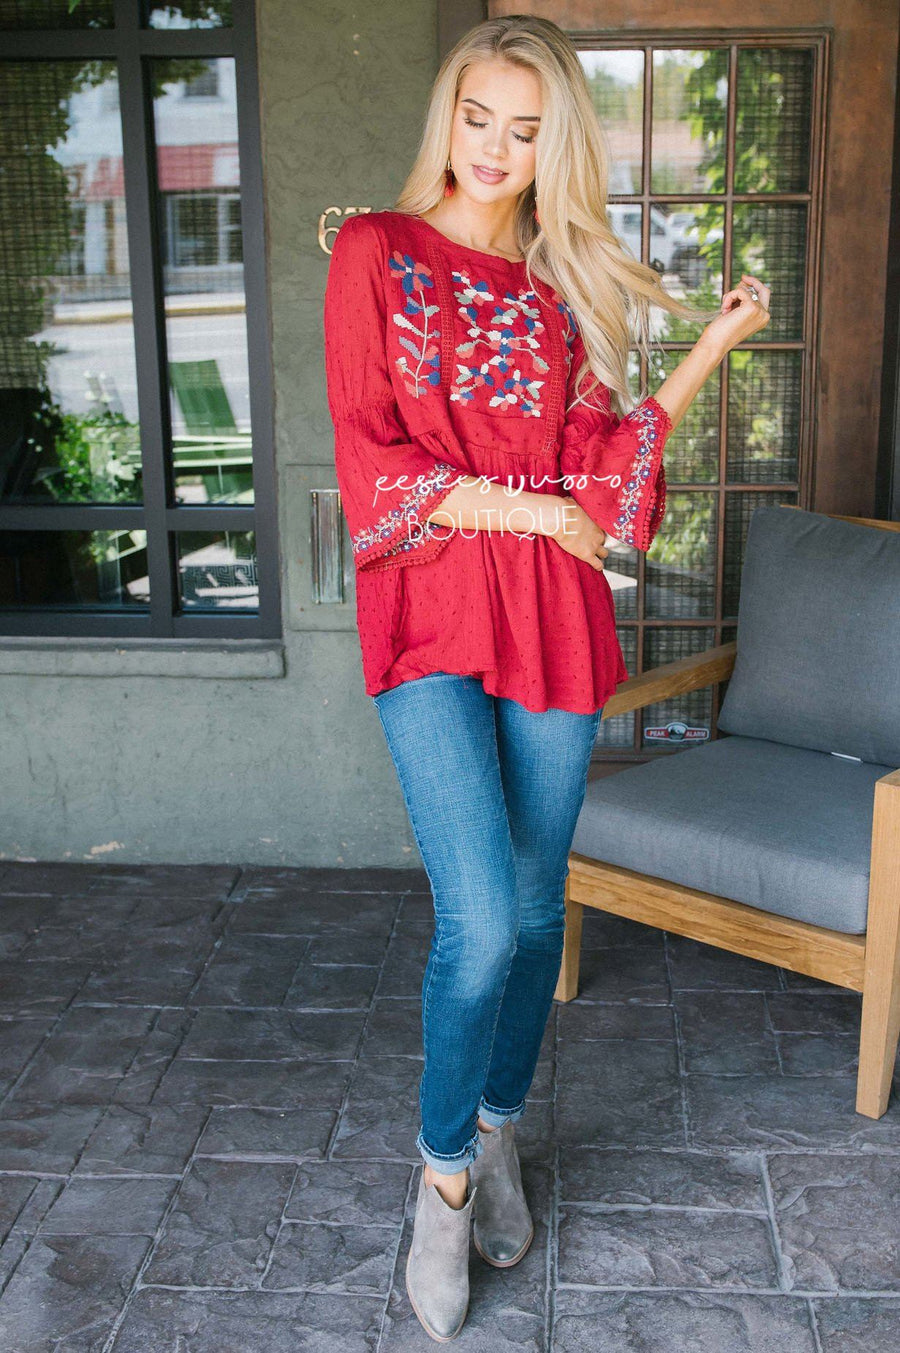 Vivid Fall Embroidered Peplum Top